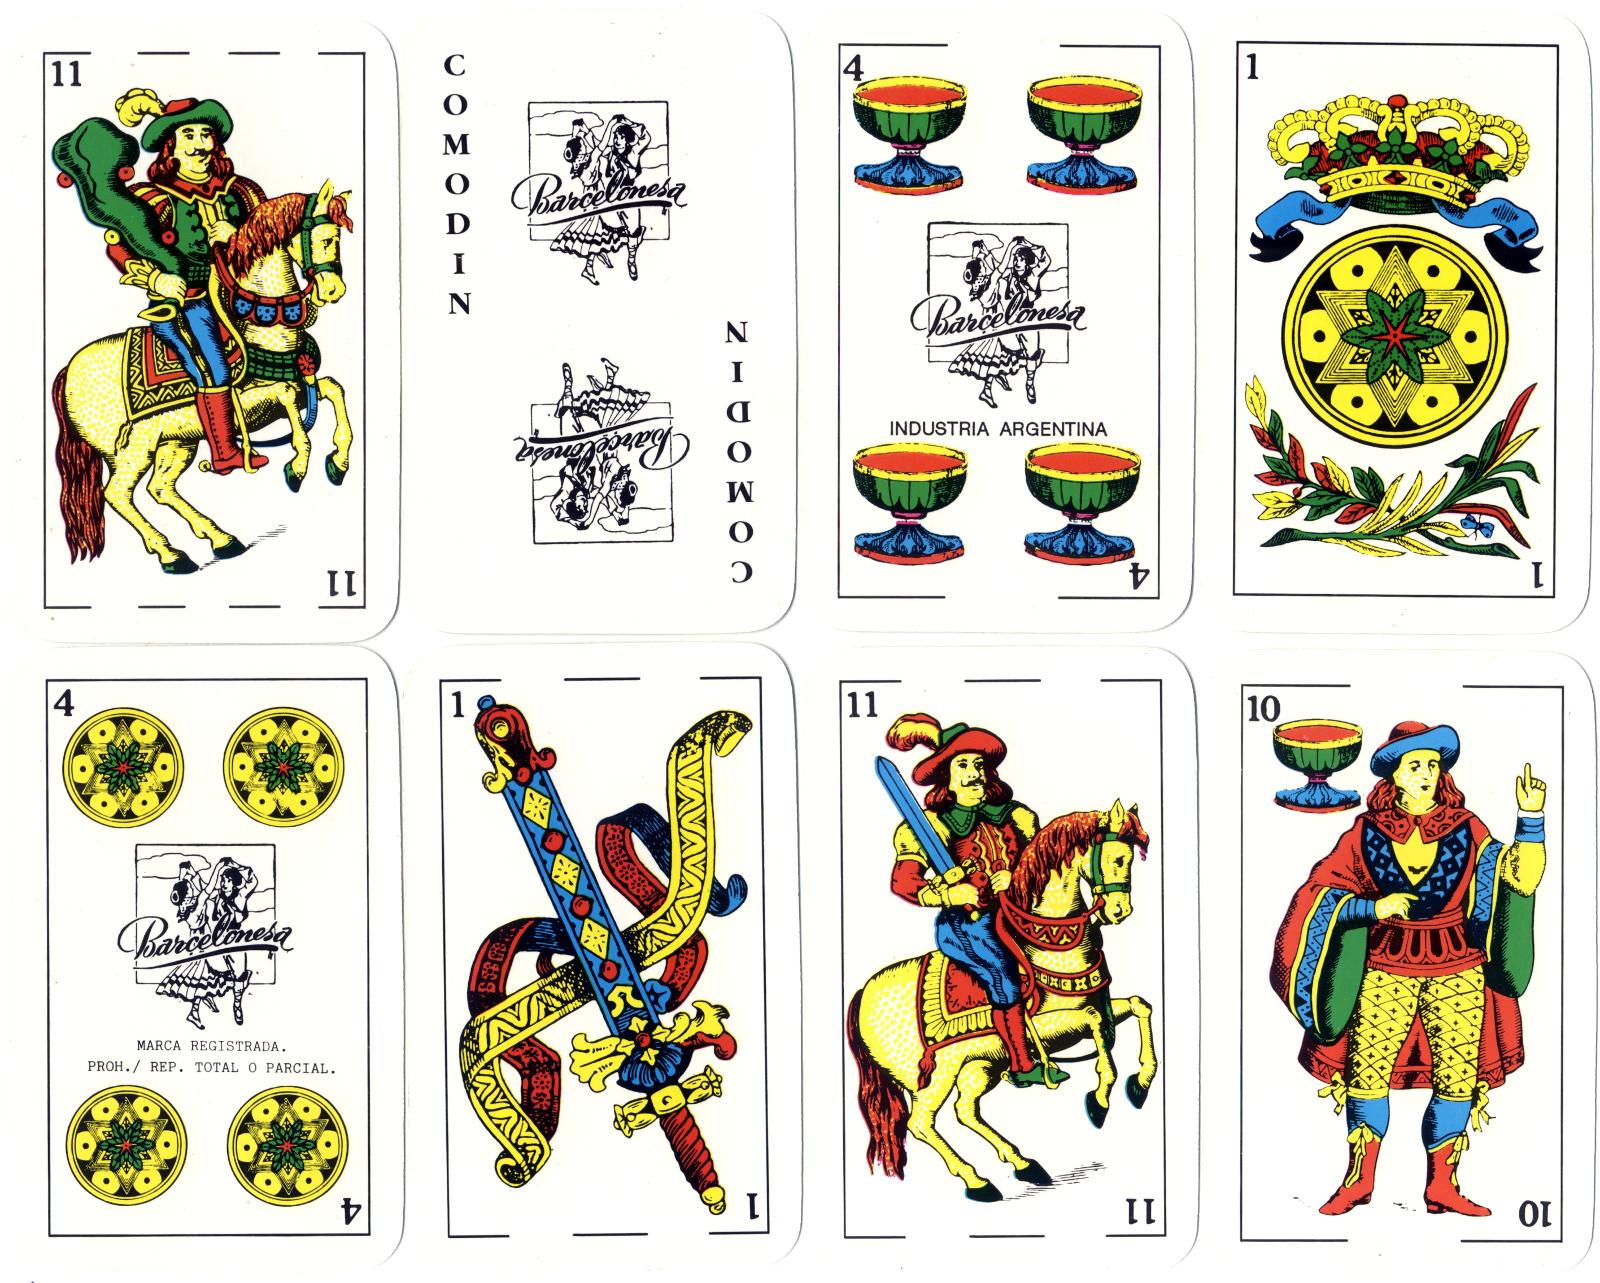 Barcelonesa playing cards, Gráfica 2001